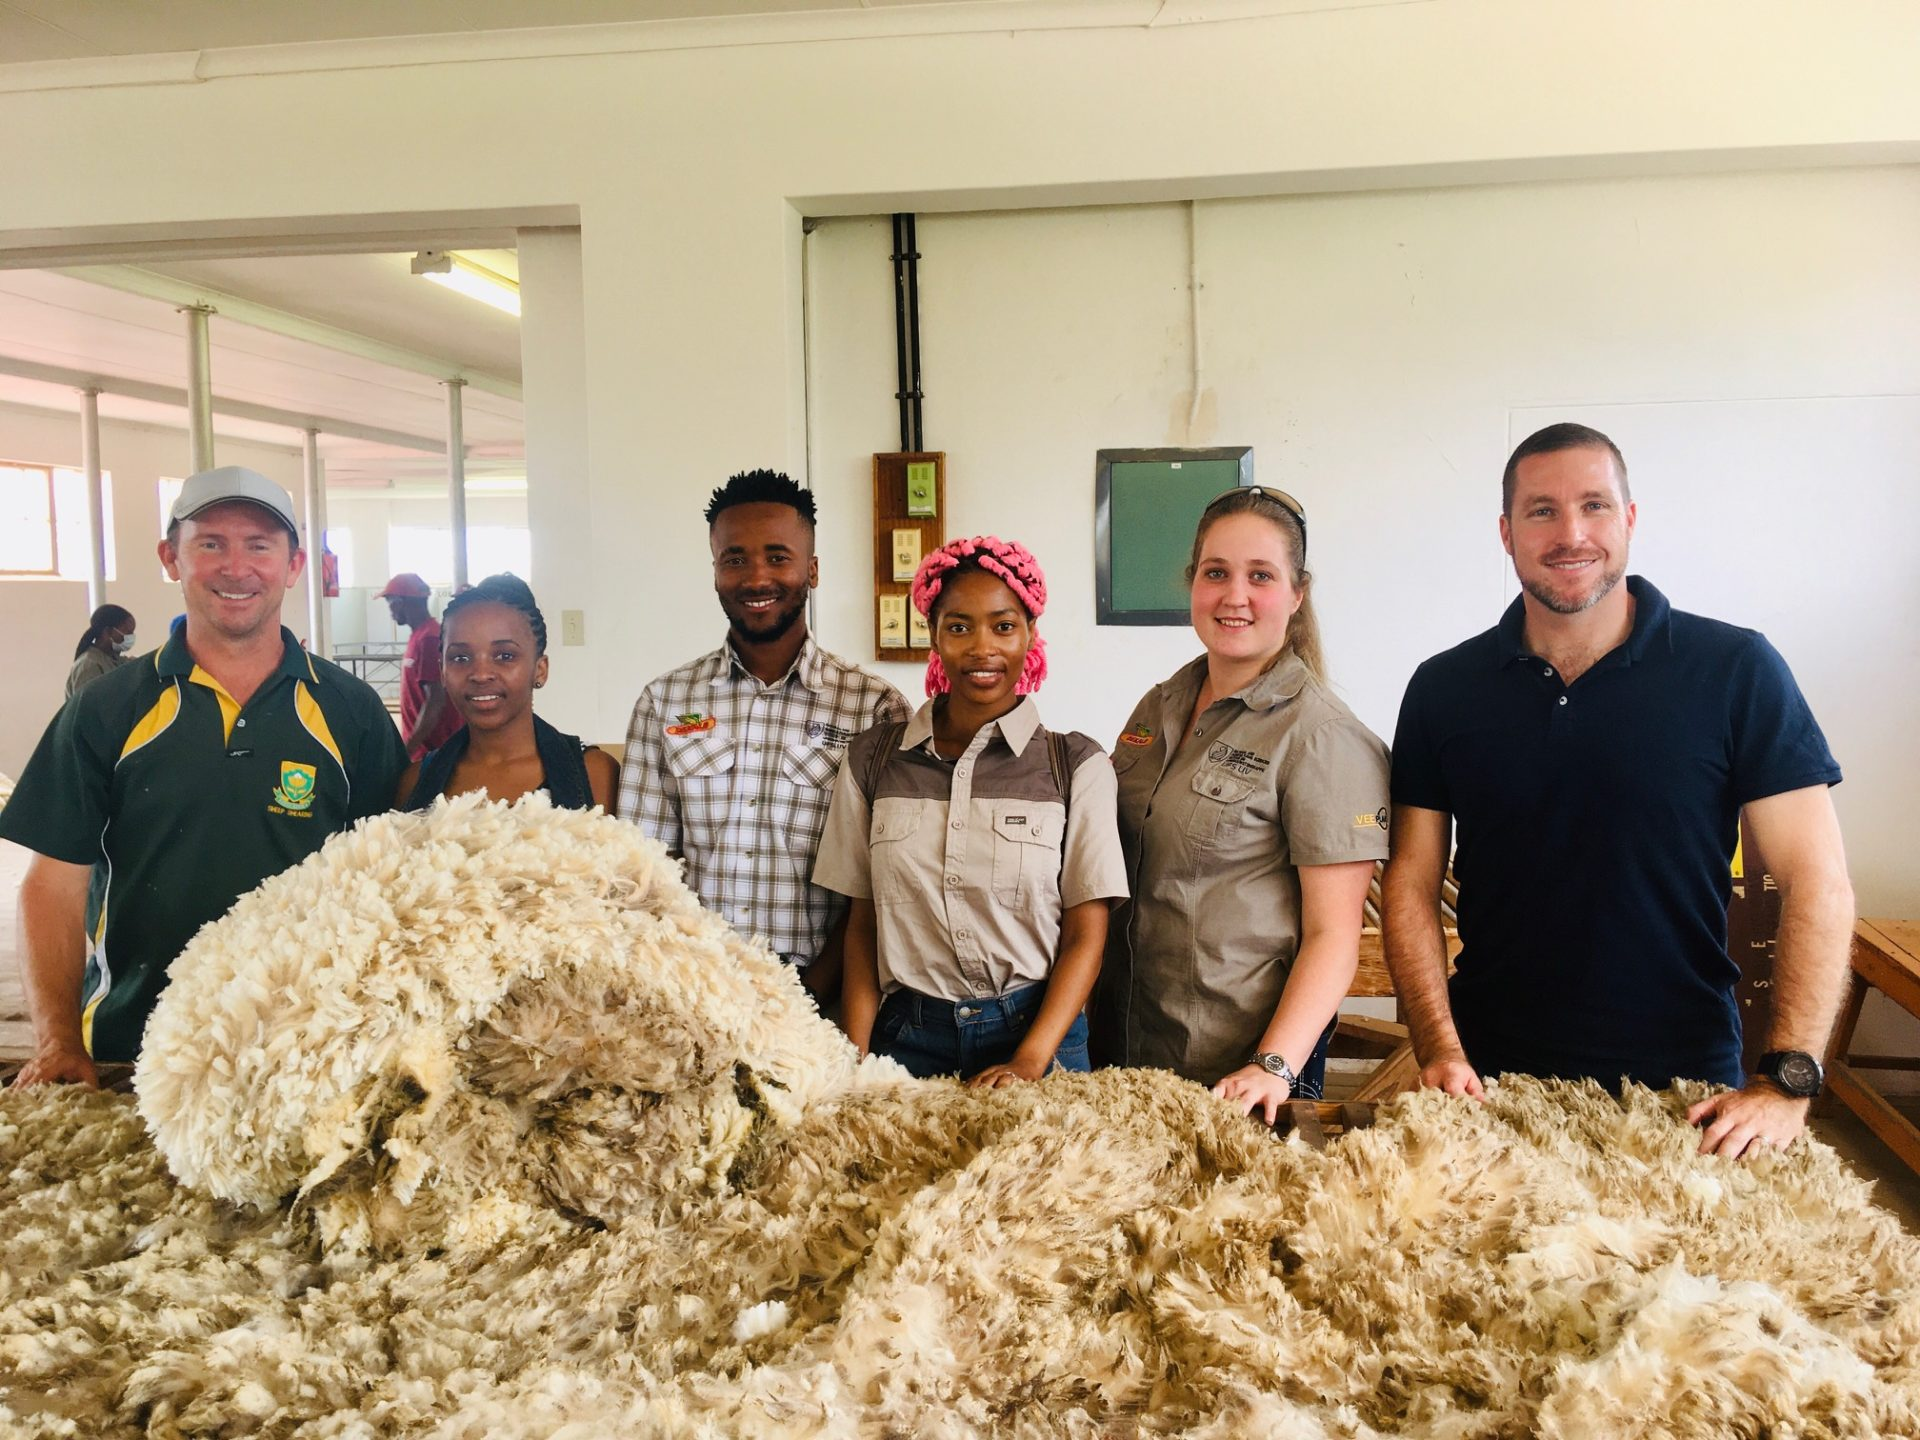 Fifteen students from the University of the Free State will directly benefit from a communal farmers project, including two PhD and three Master's students. Pictured from the left are Andries Strauss, Ketshepileone Matlhoko, Bonga Madyibi, Alina Ntsipane, Michelle Marais and Dr Jan Swanepoel. Photo: Supplied